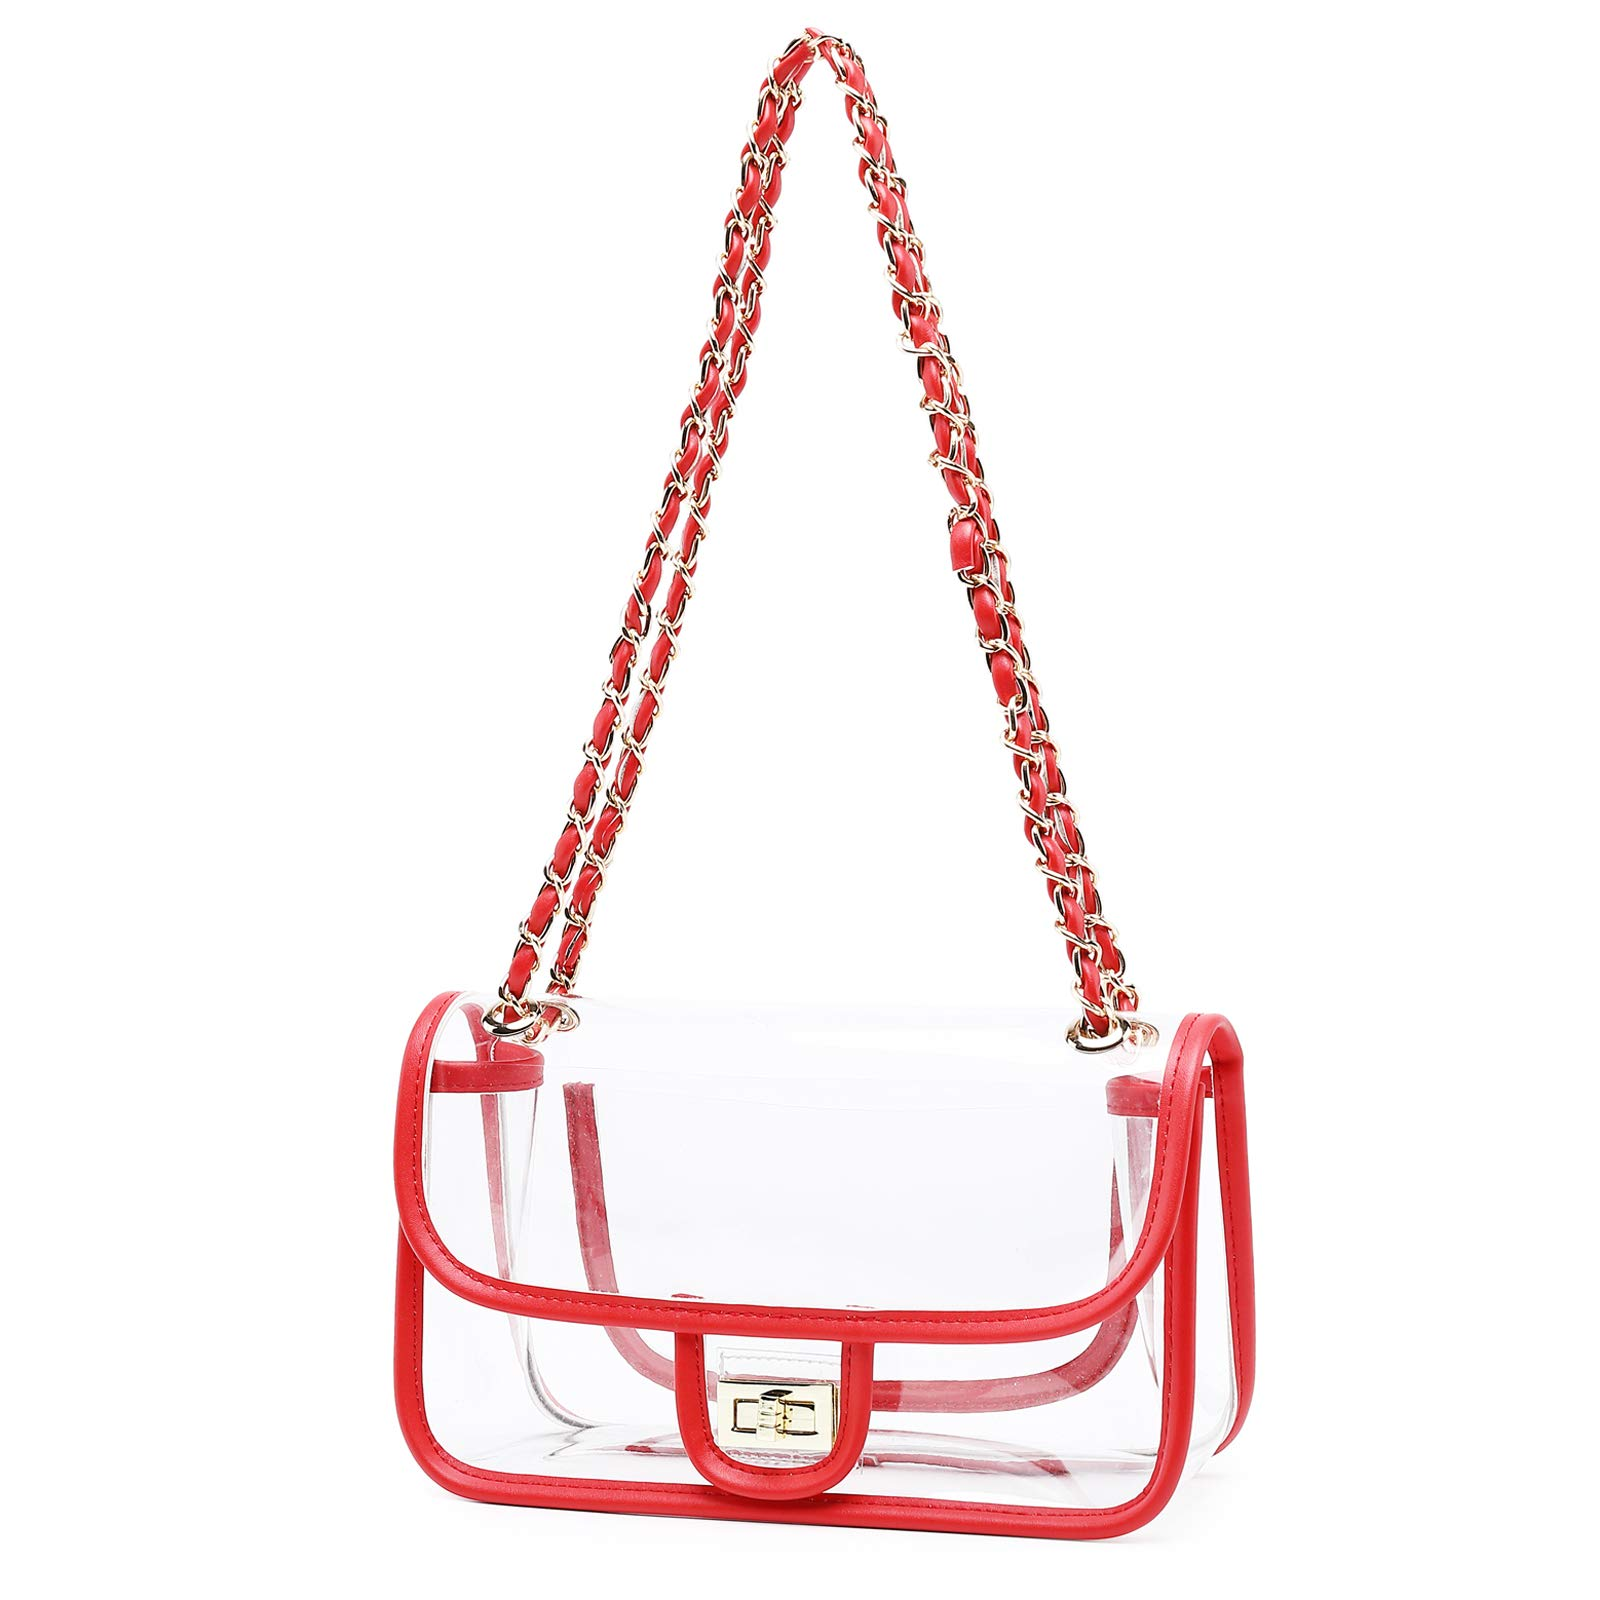 Lam Gallery Womens Clear Handbag Purses NFL Stadium Approved PVC Bag for Football Games Turn Lock Chain Shoulder Crossbody Bags Transparent Plastic Bag See Through Bag for Work and Concert Red